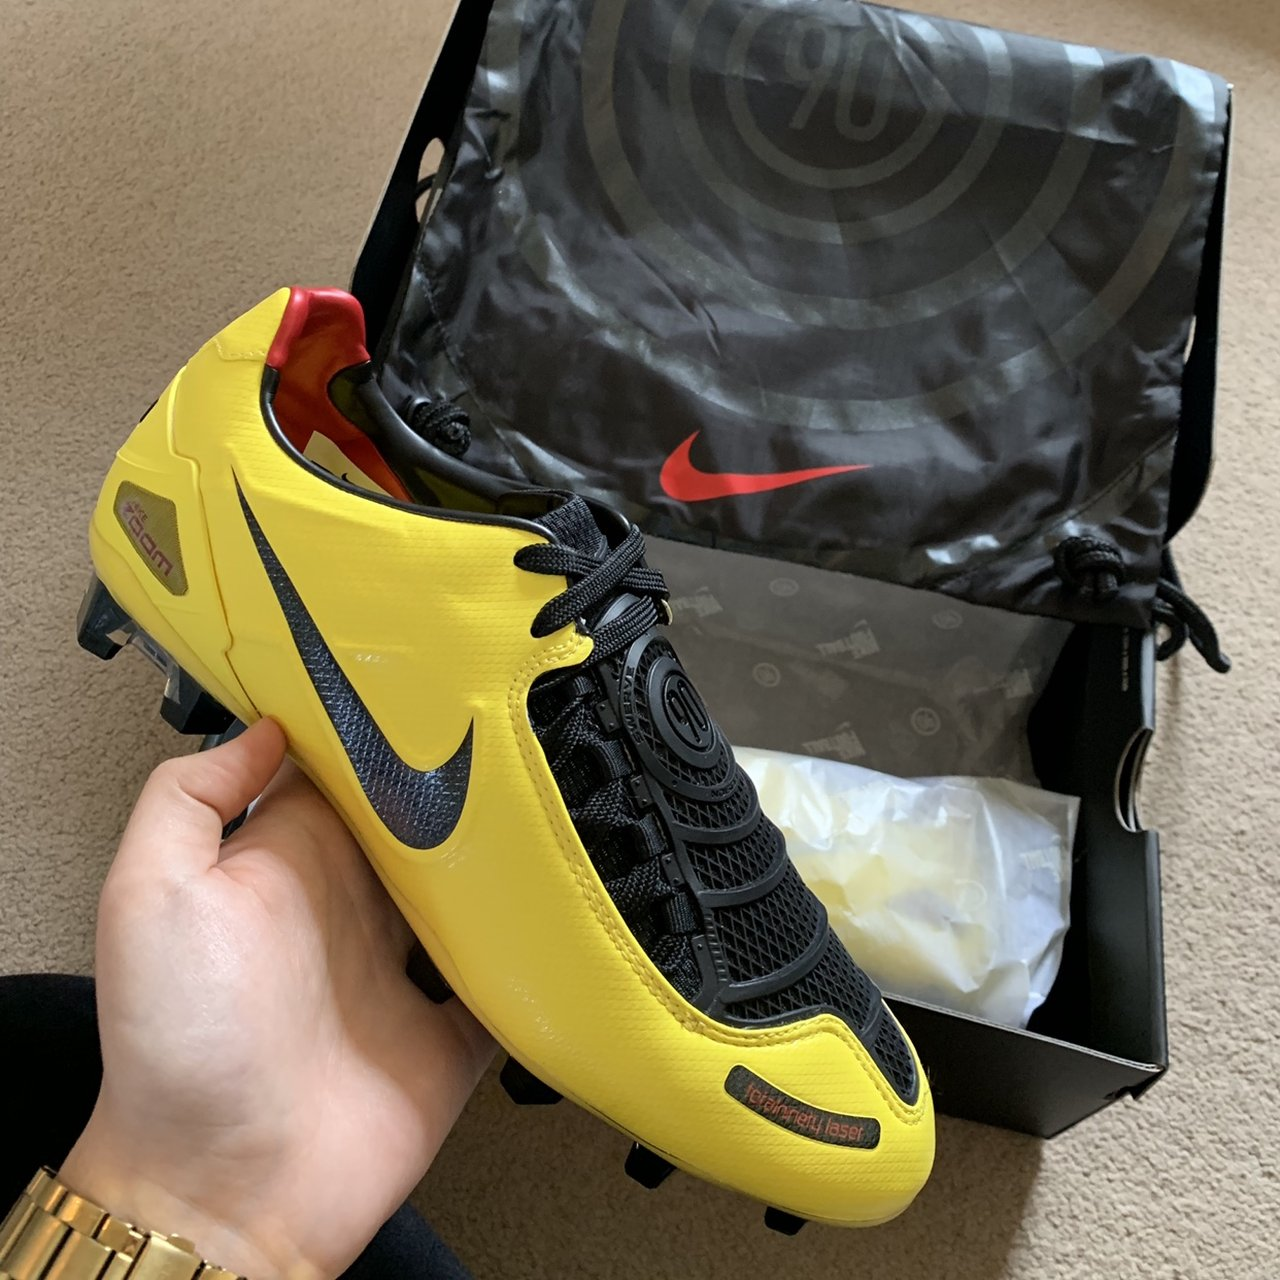 NIKE TOTAL 90 LASER FOOTBALL BOOTS